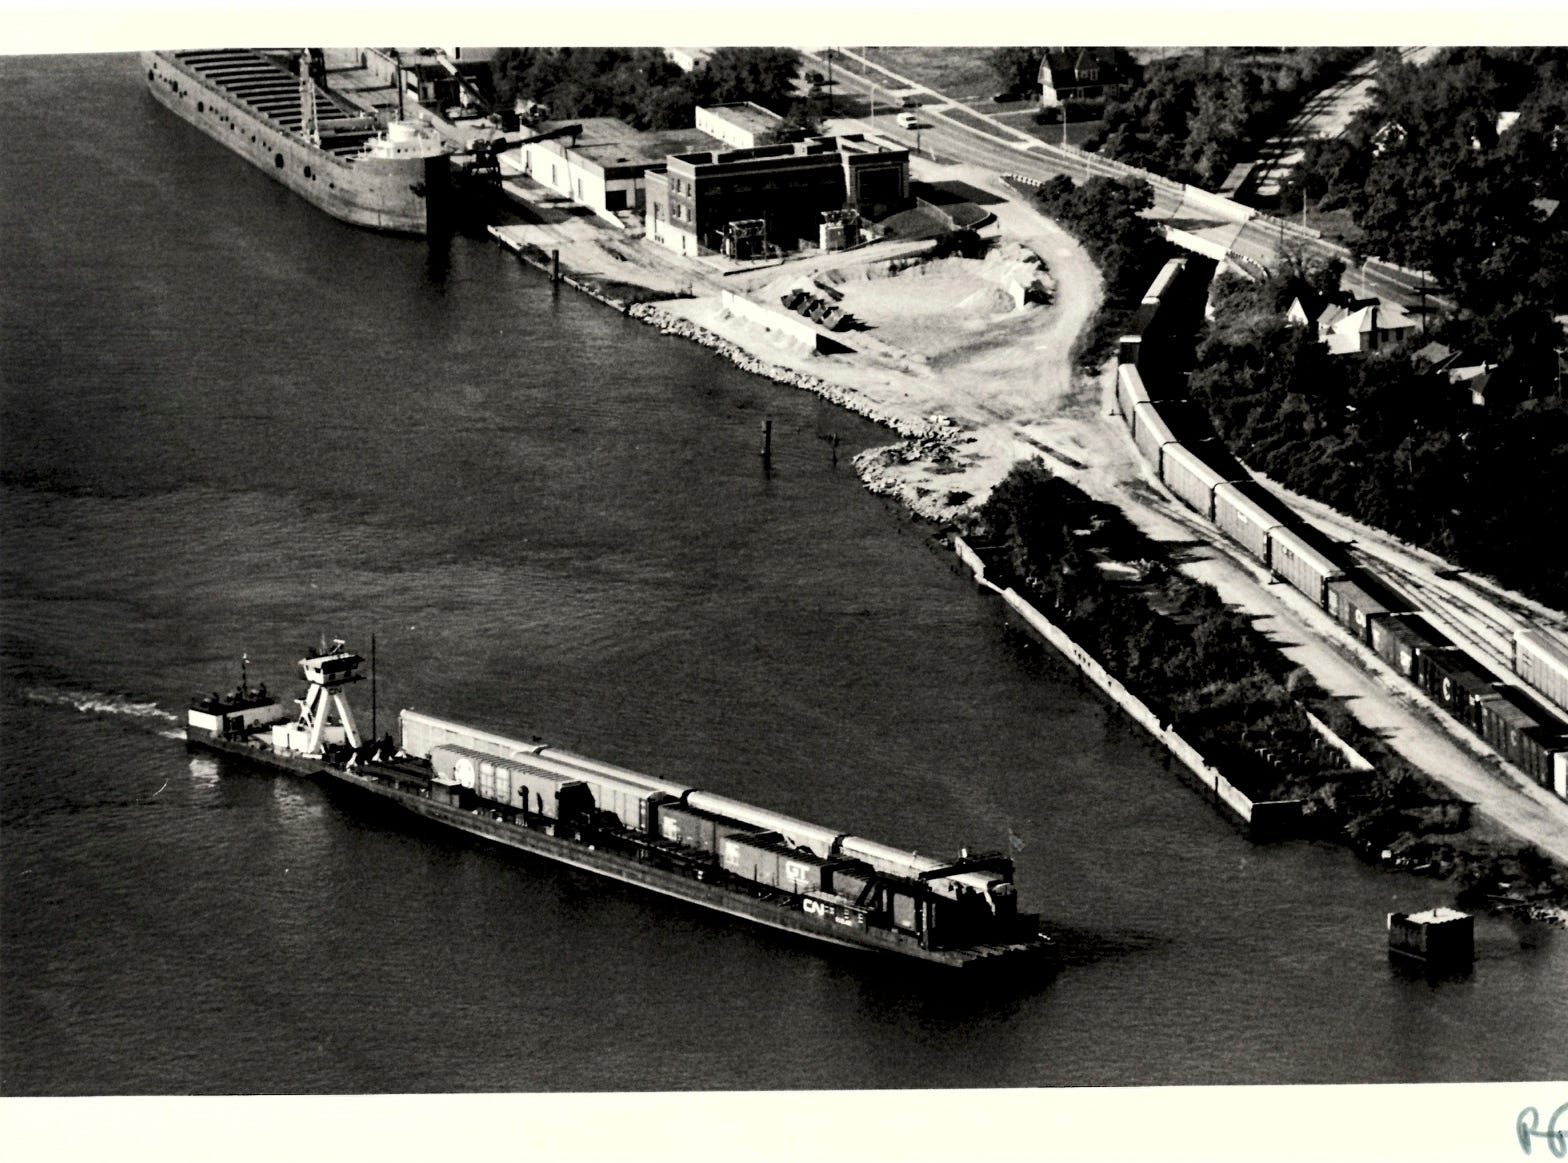 In a photo dated 1984, a car ferry carrying train cars from Sarnia passes the Seaway Terminal in Port Huron on its way to the CSX and Grand Trunk Western railyards in Port Huron.